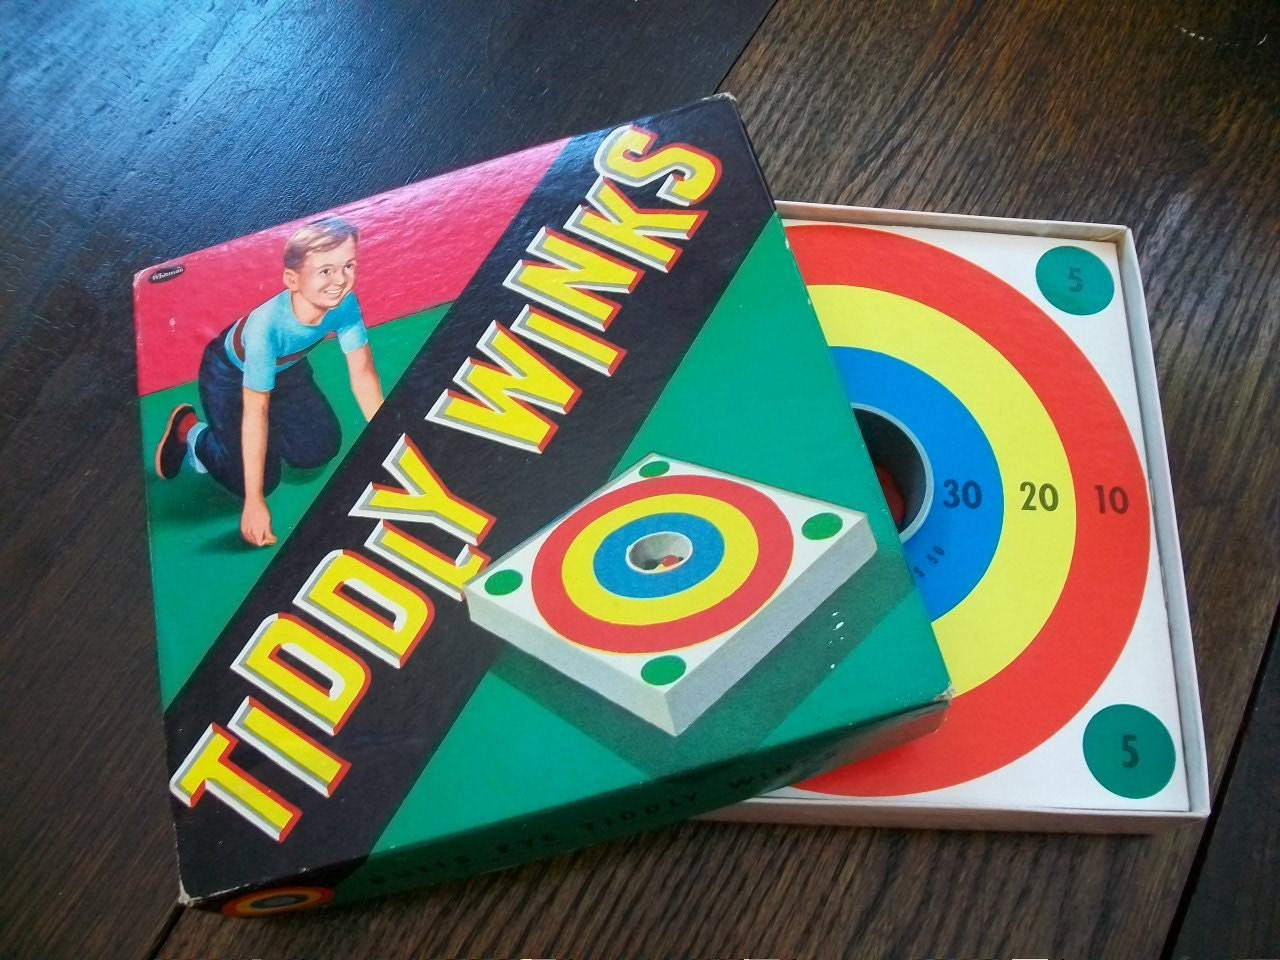 Toys And Games Com : S tiddly winks game toy